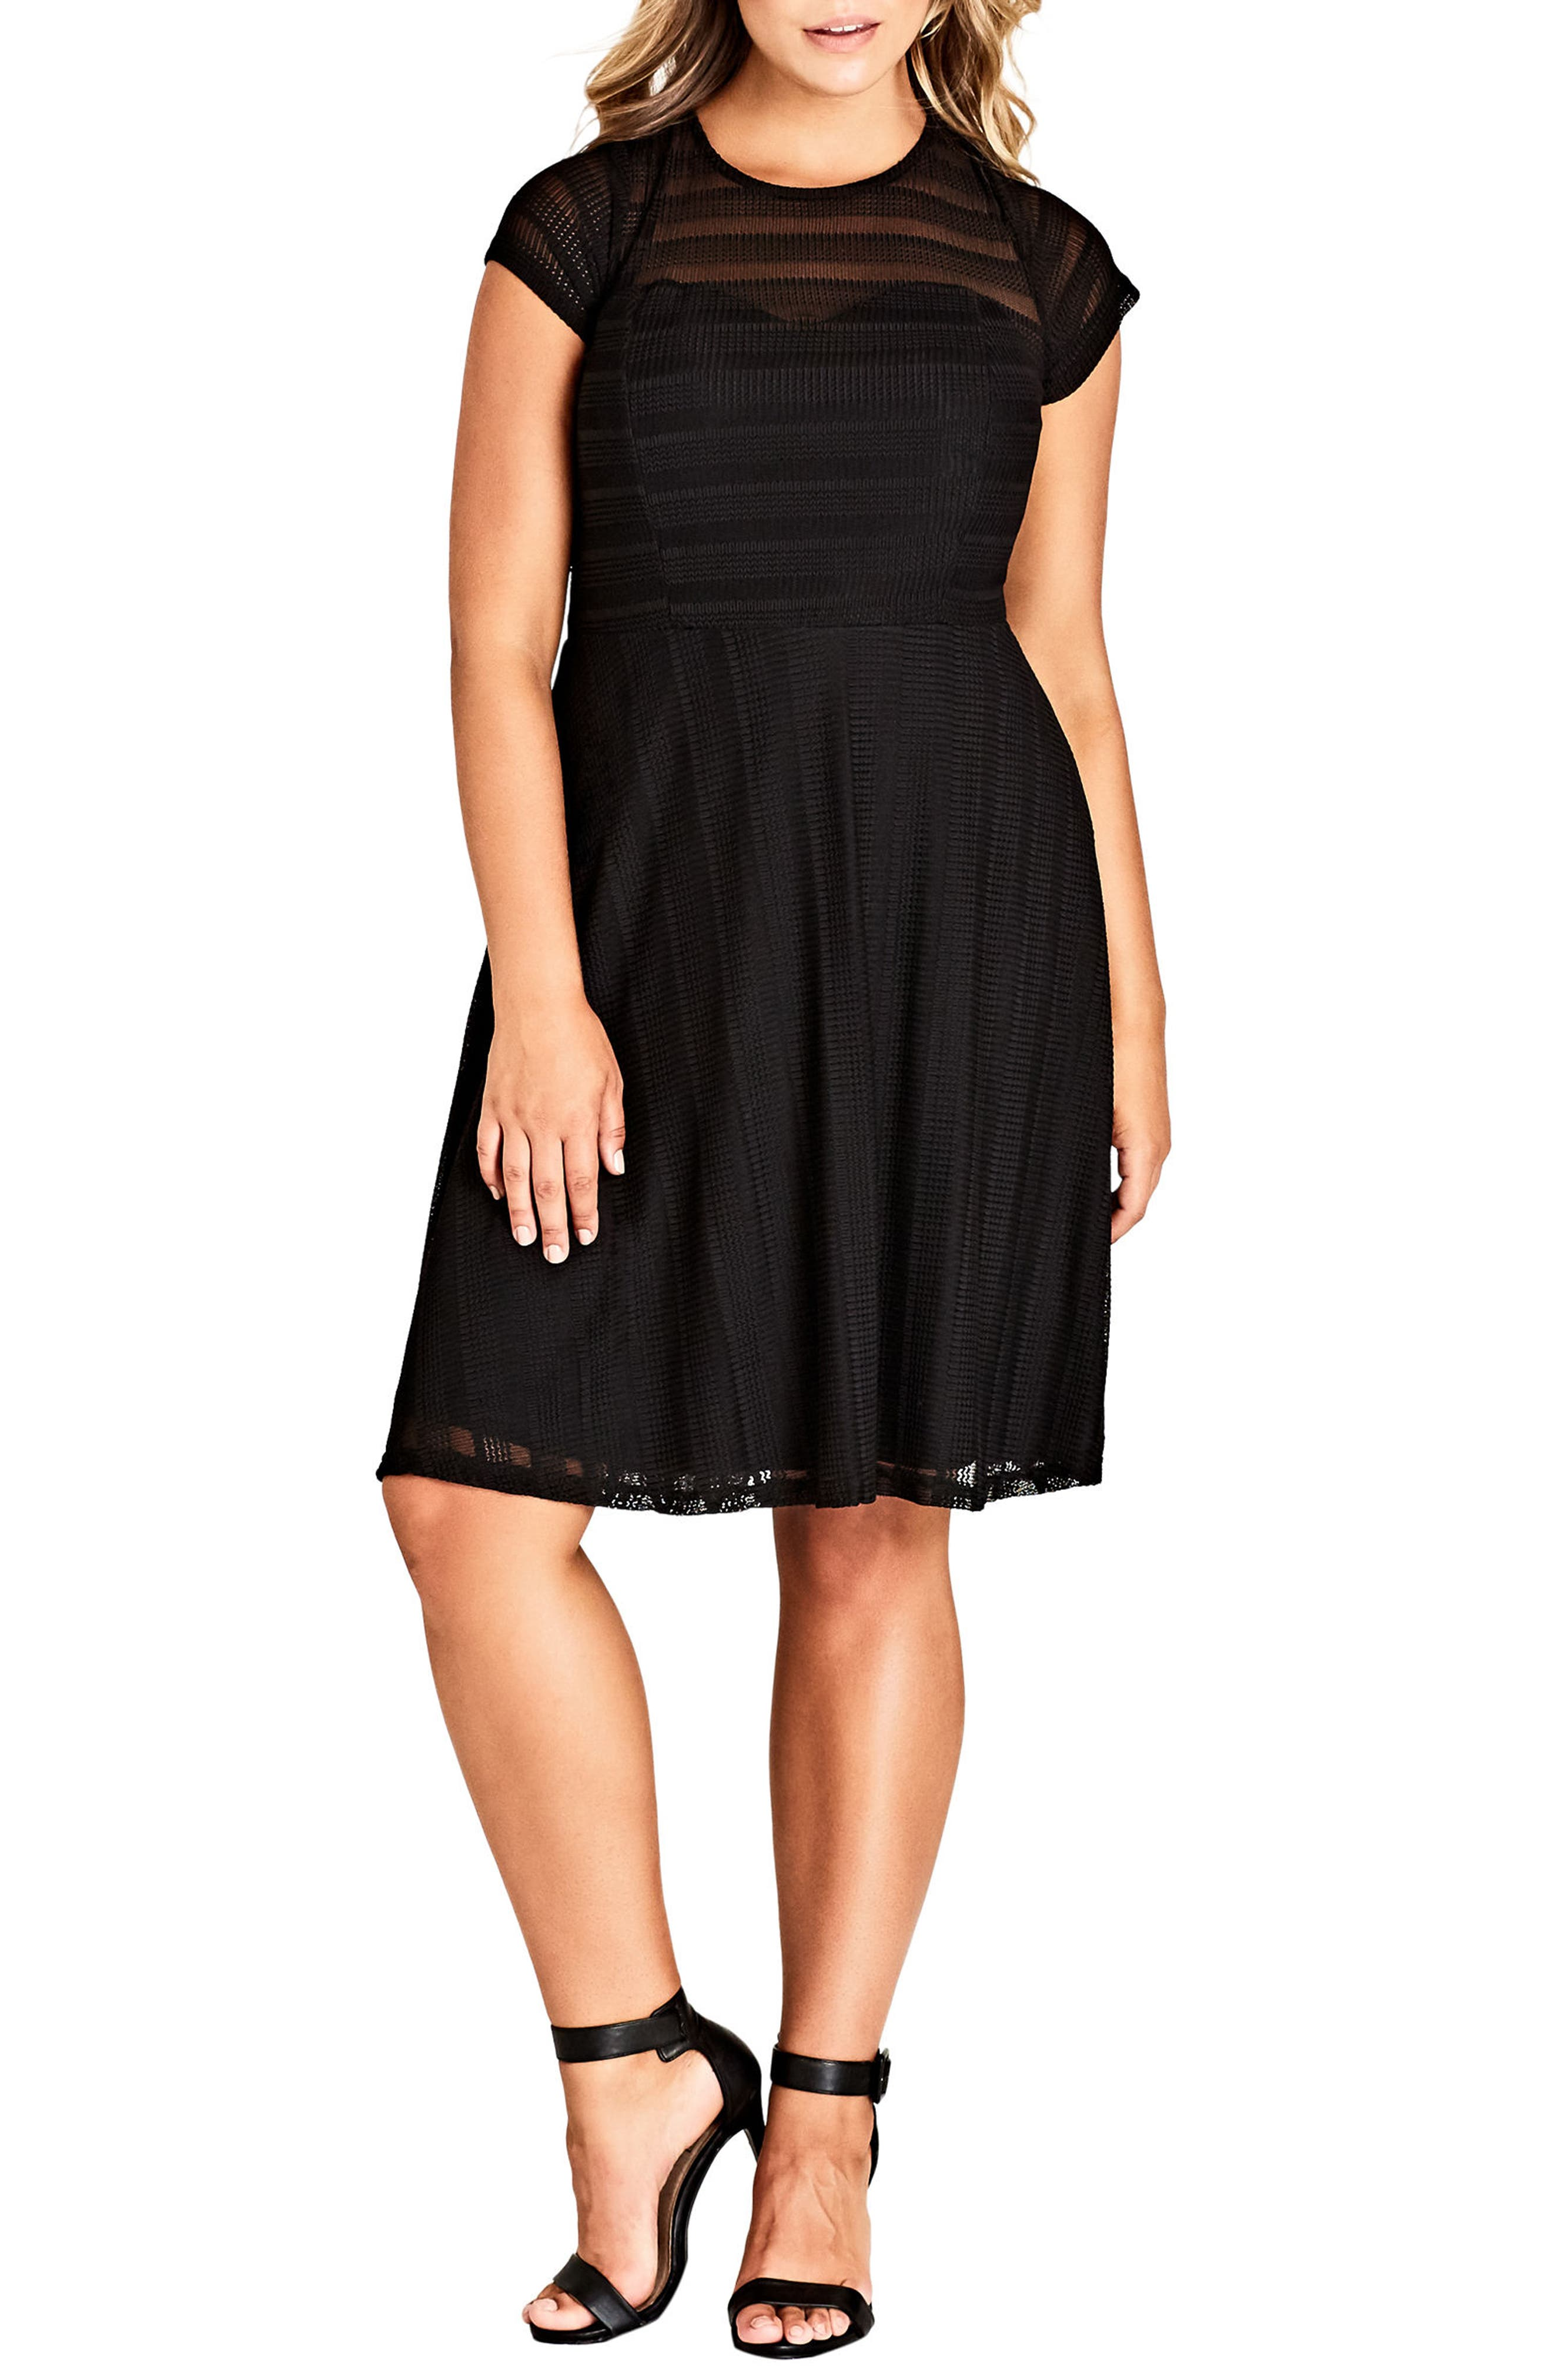 Main Image - City Chic Textured Heart Dress (Plus Size)